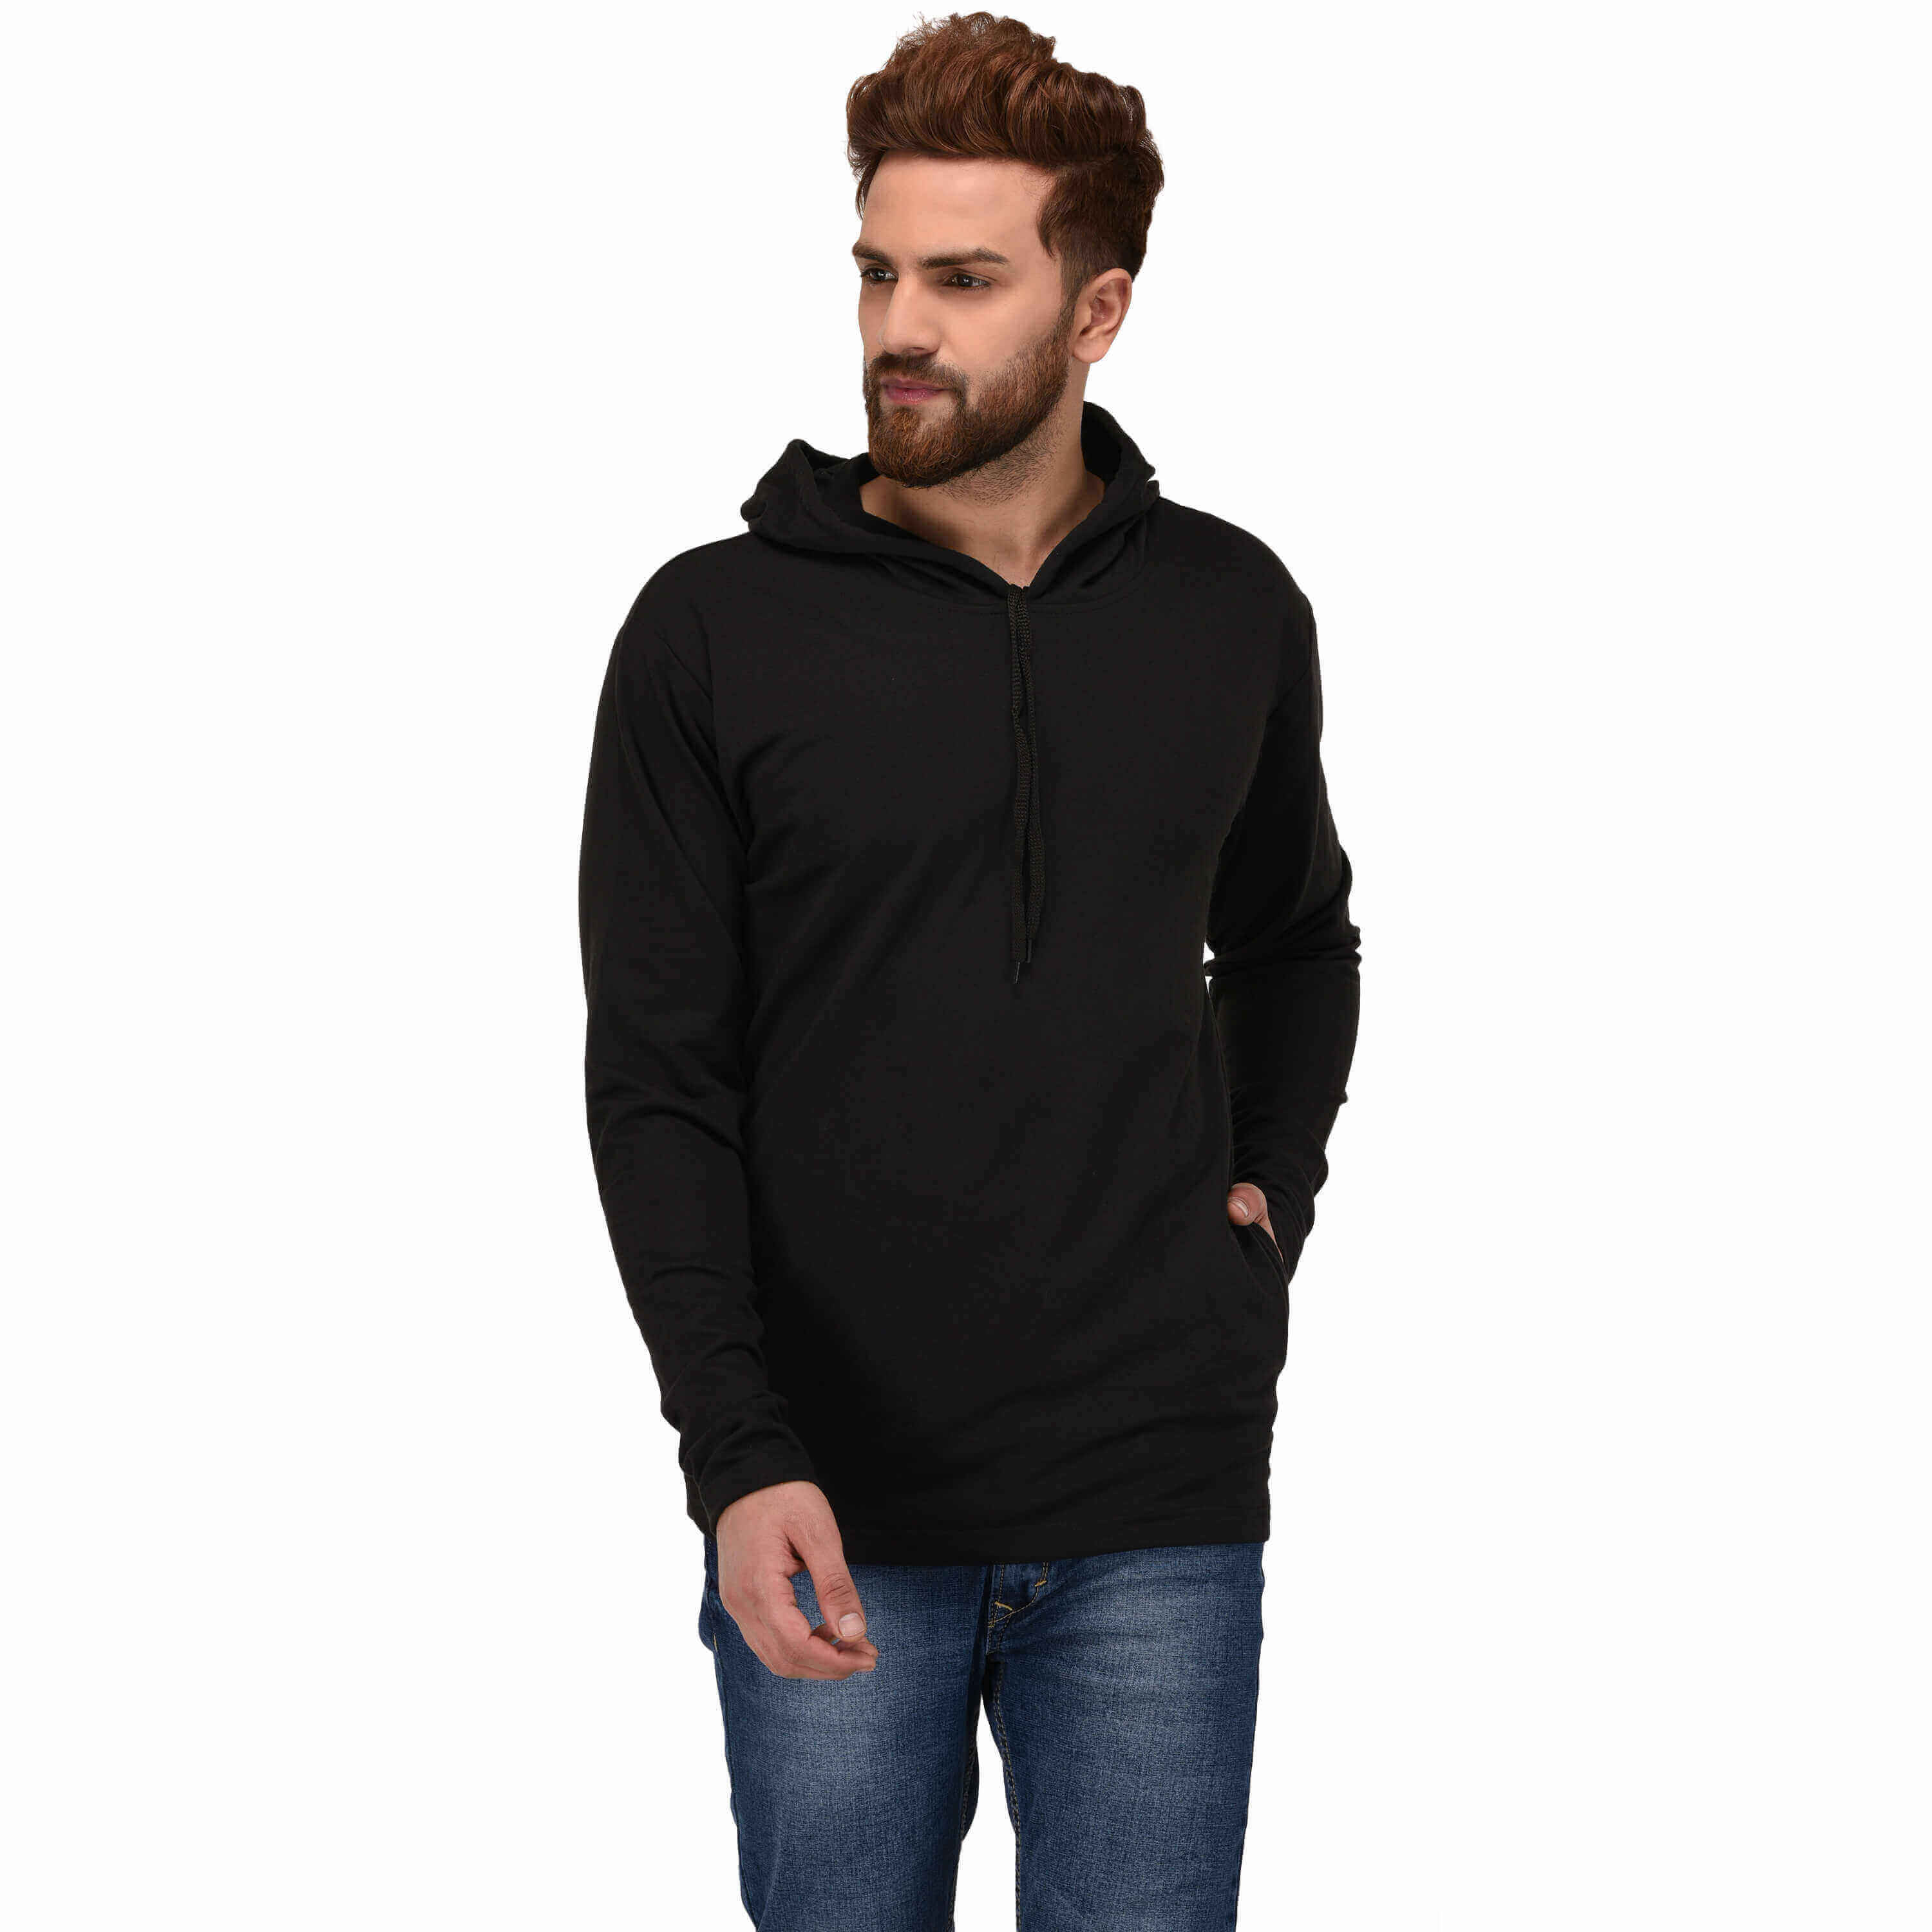 Sports Hoodies Manufacturers in Singapore